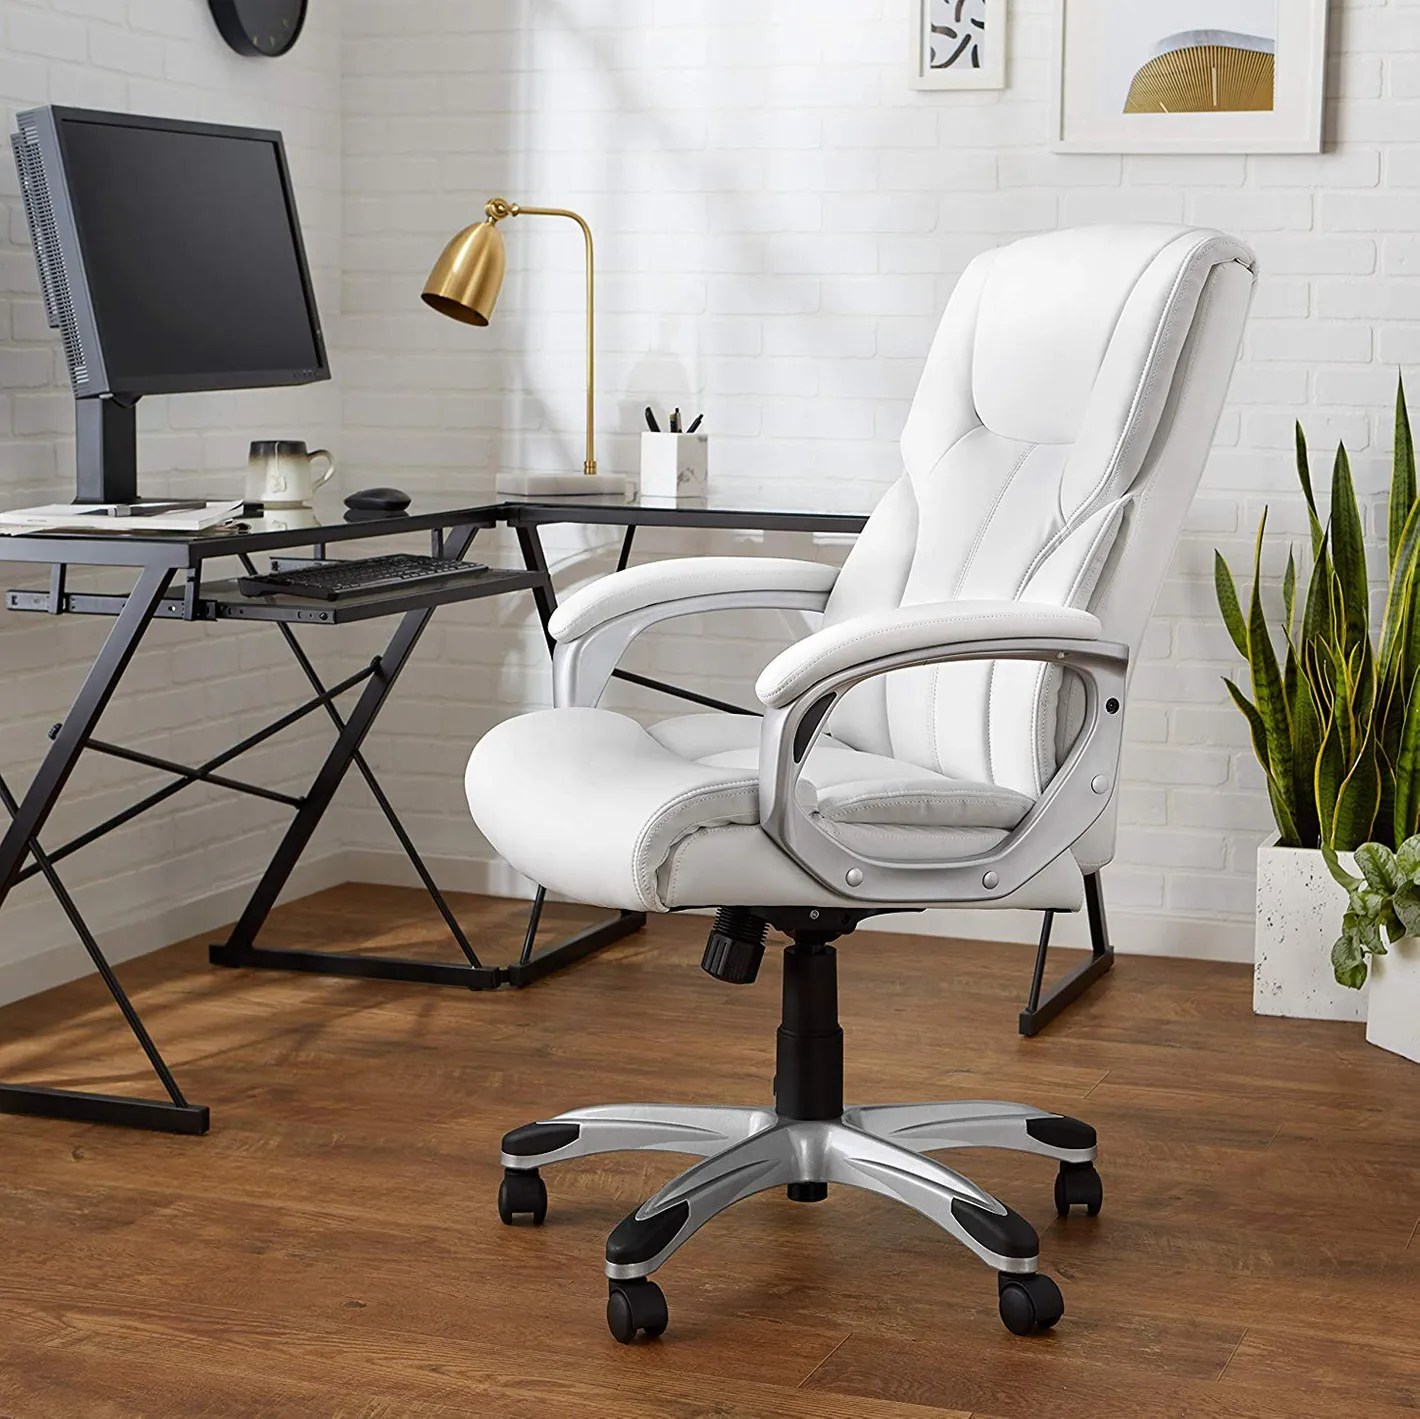 Cute Swivel Chair Amazonbasics High Back Executive Swivel Chair